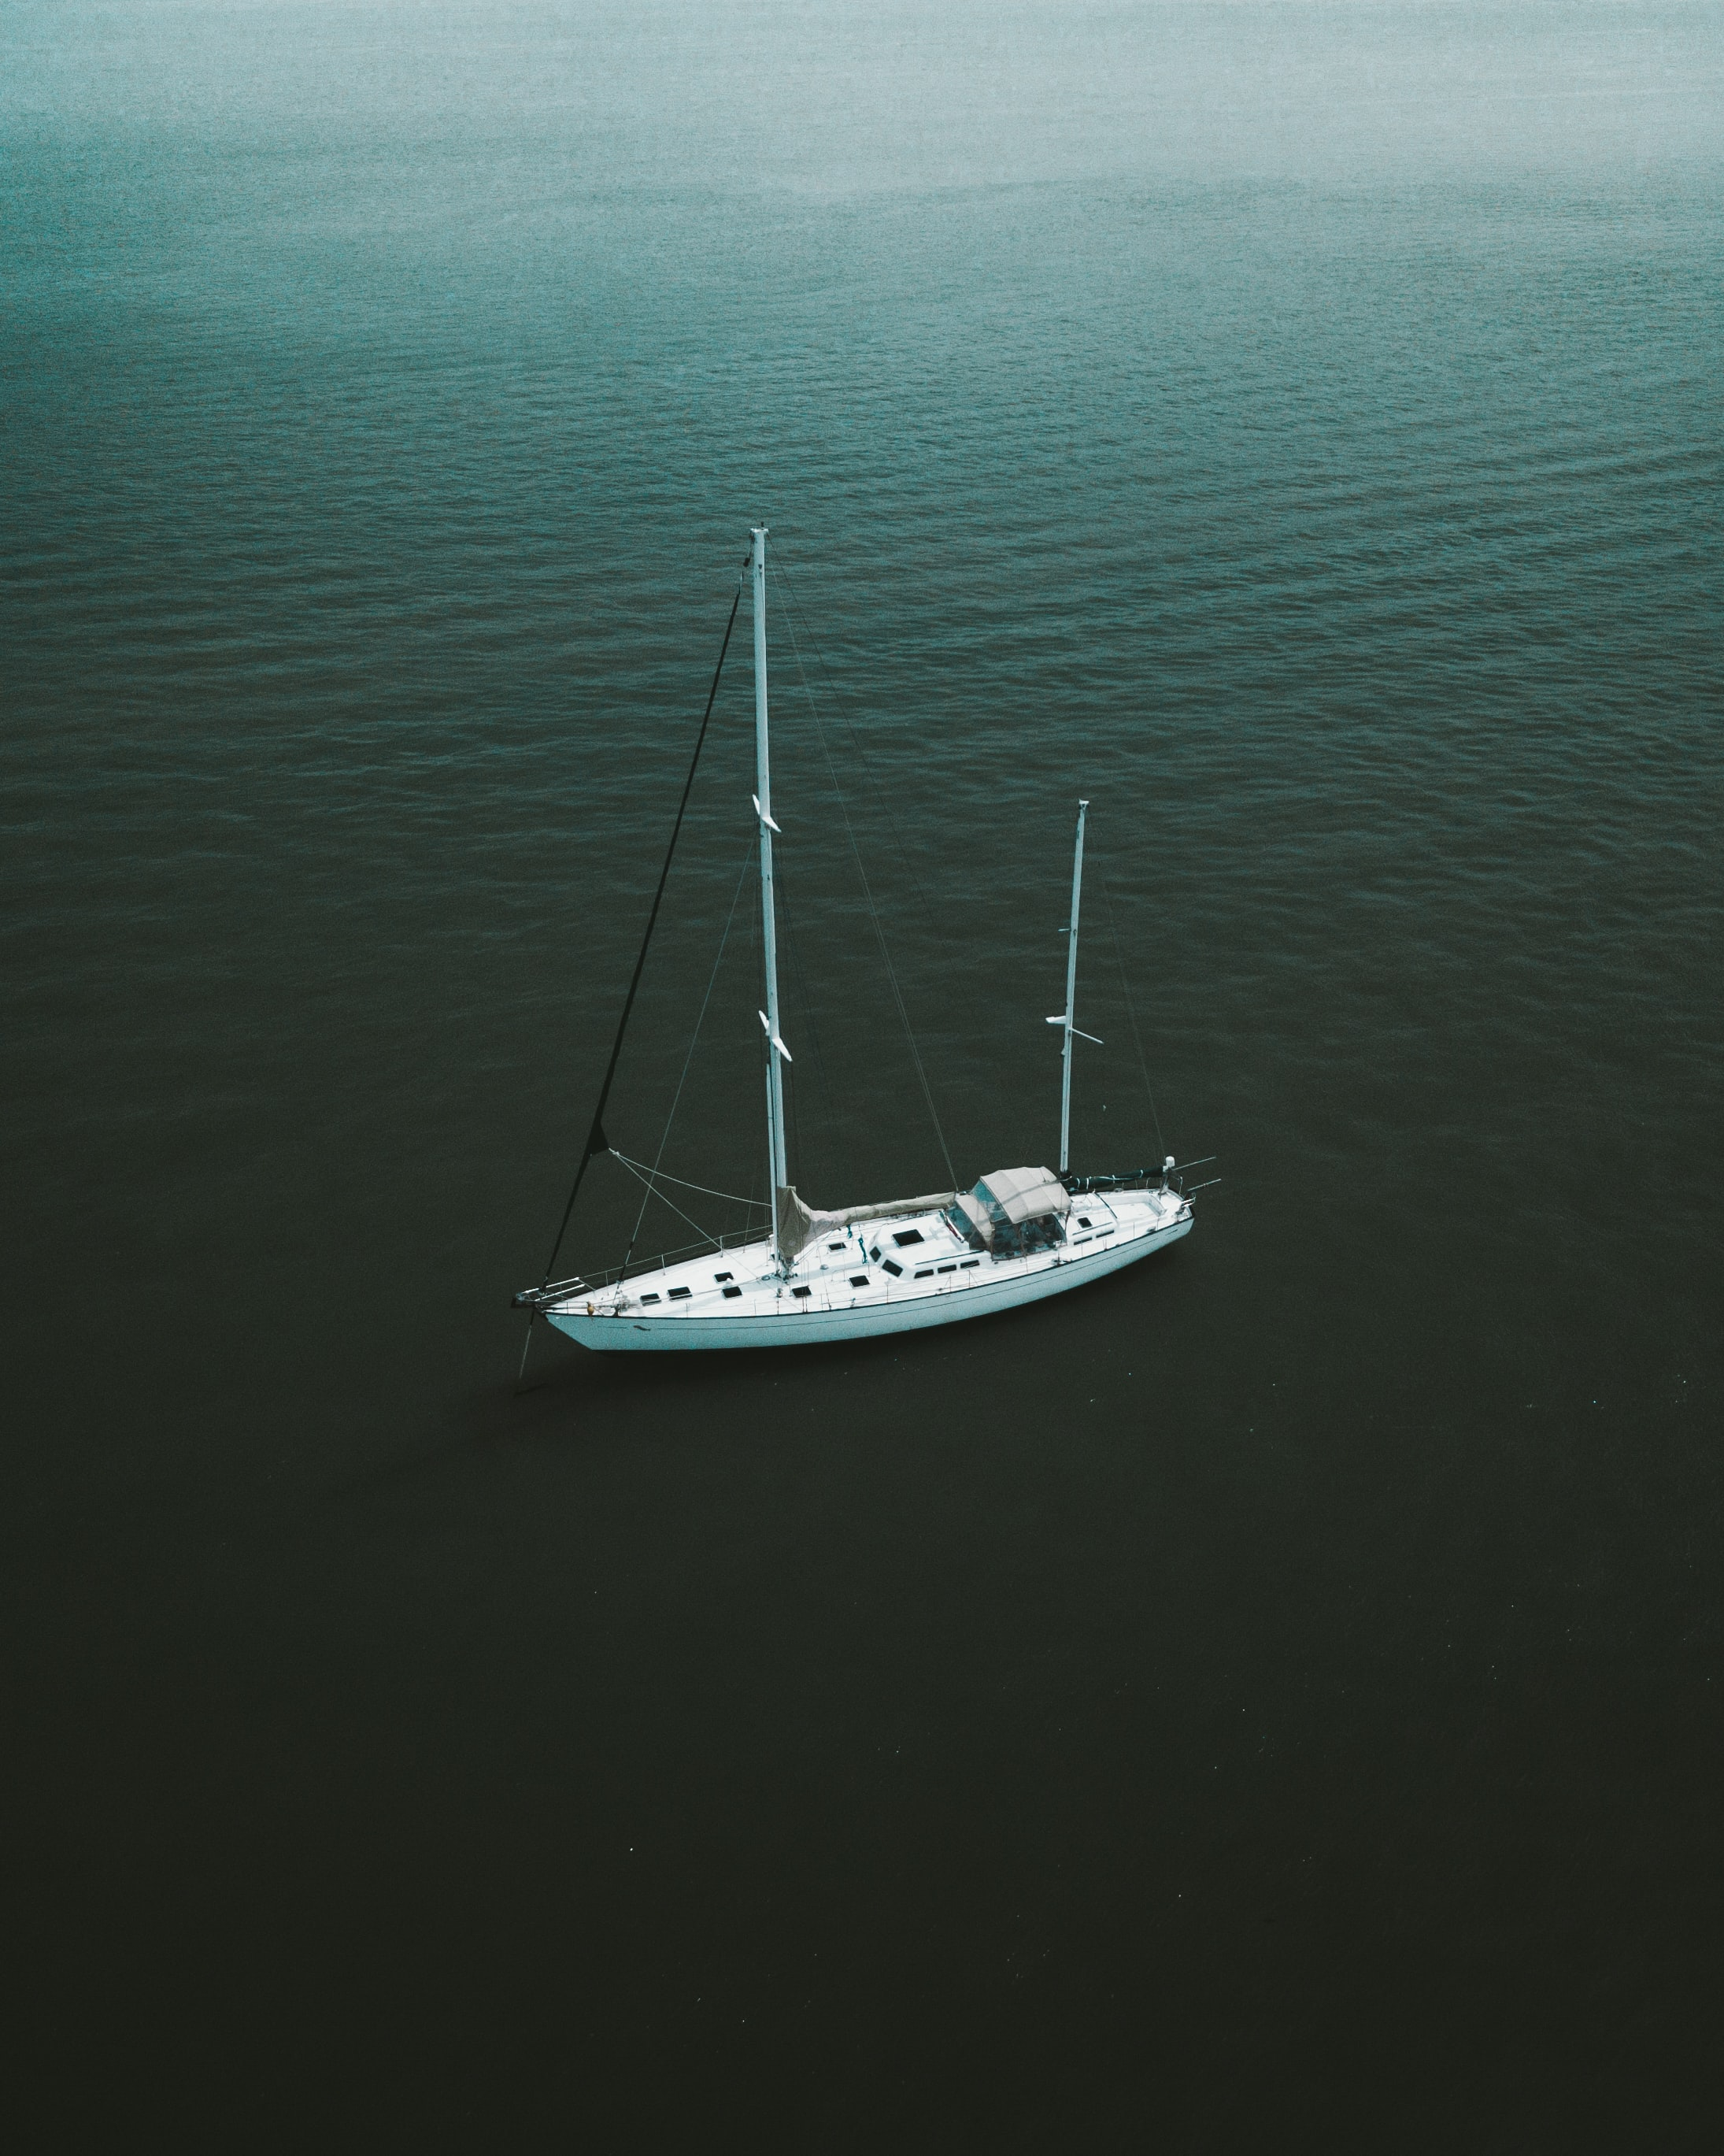 aerial photo of ship on body of water